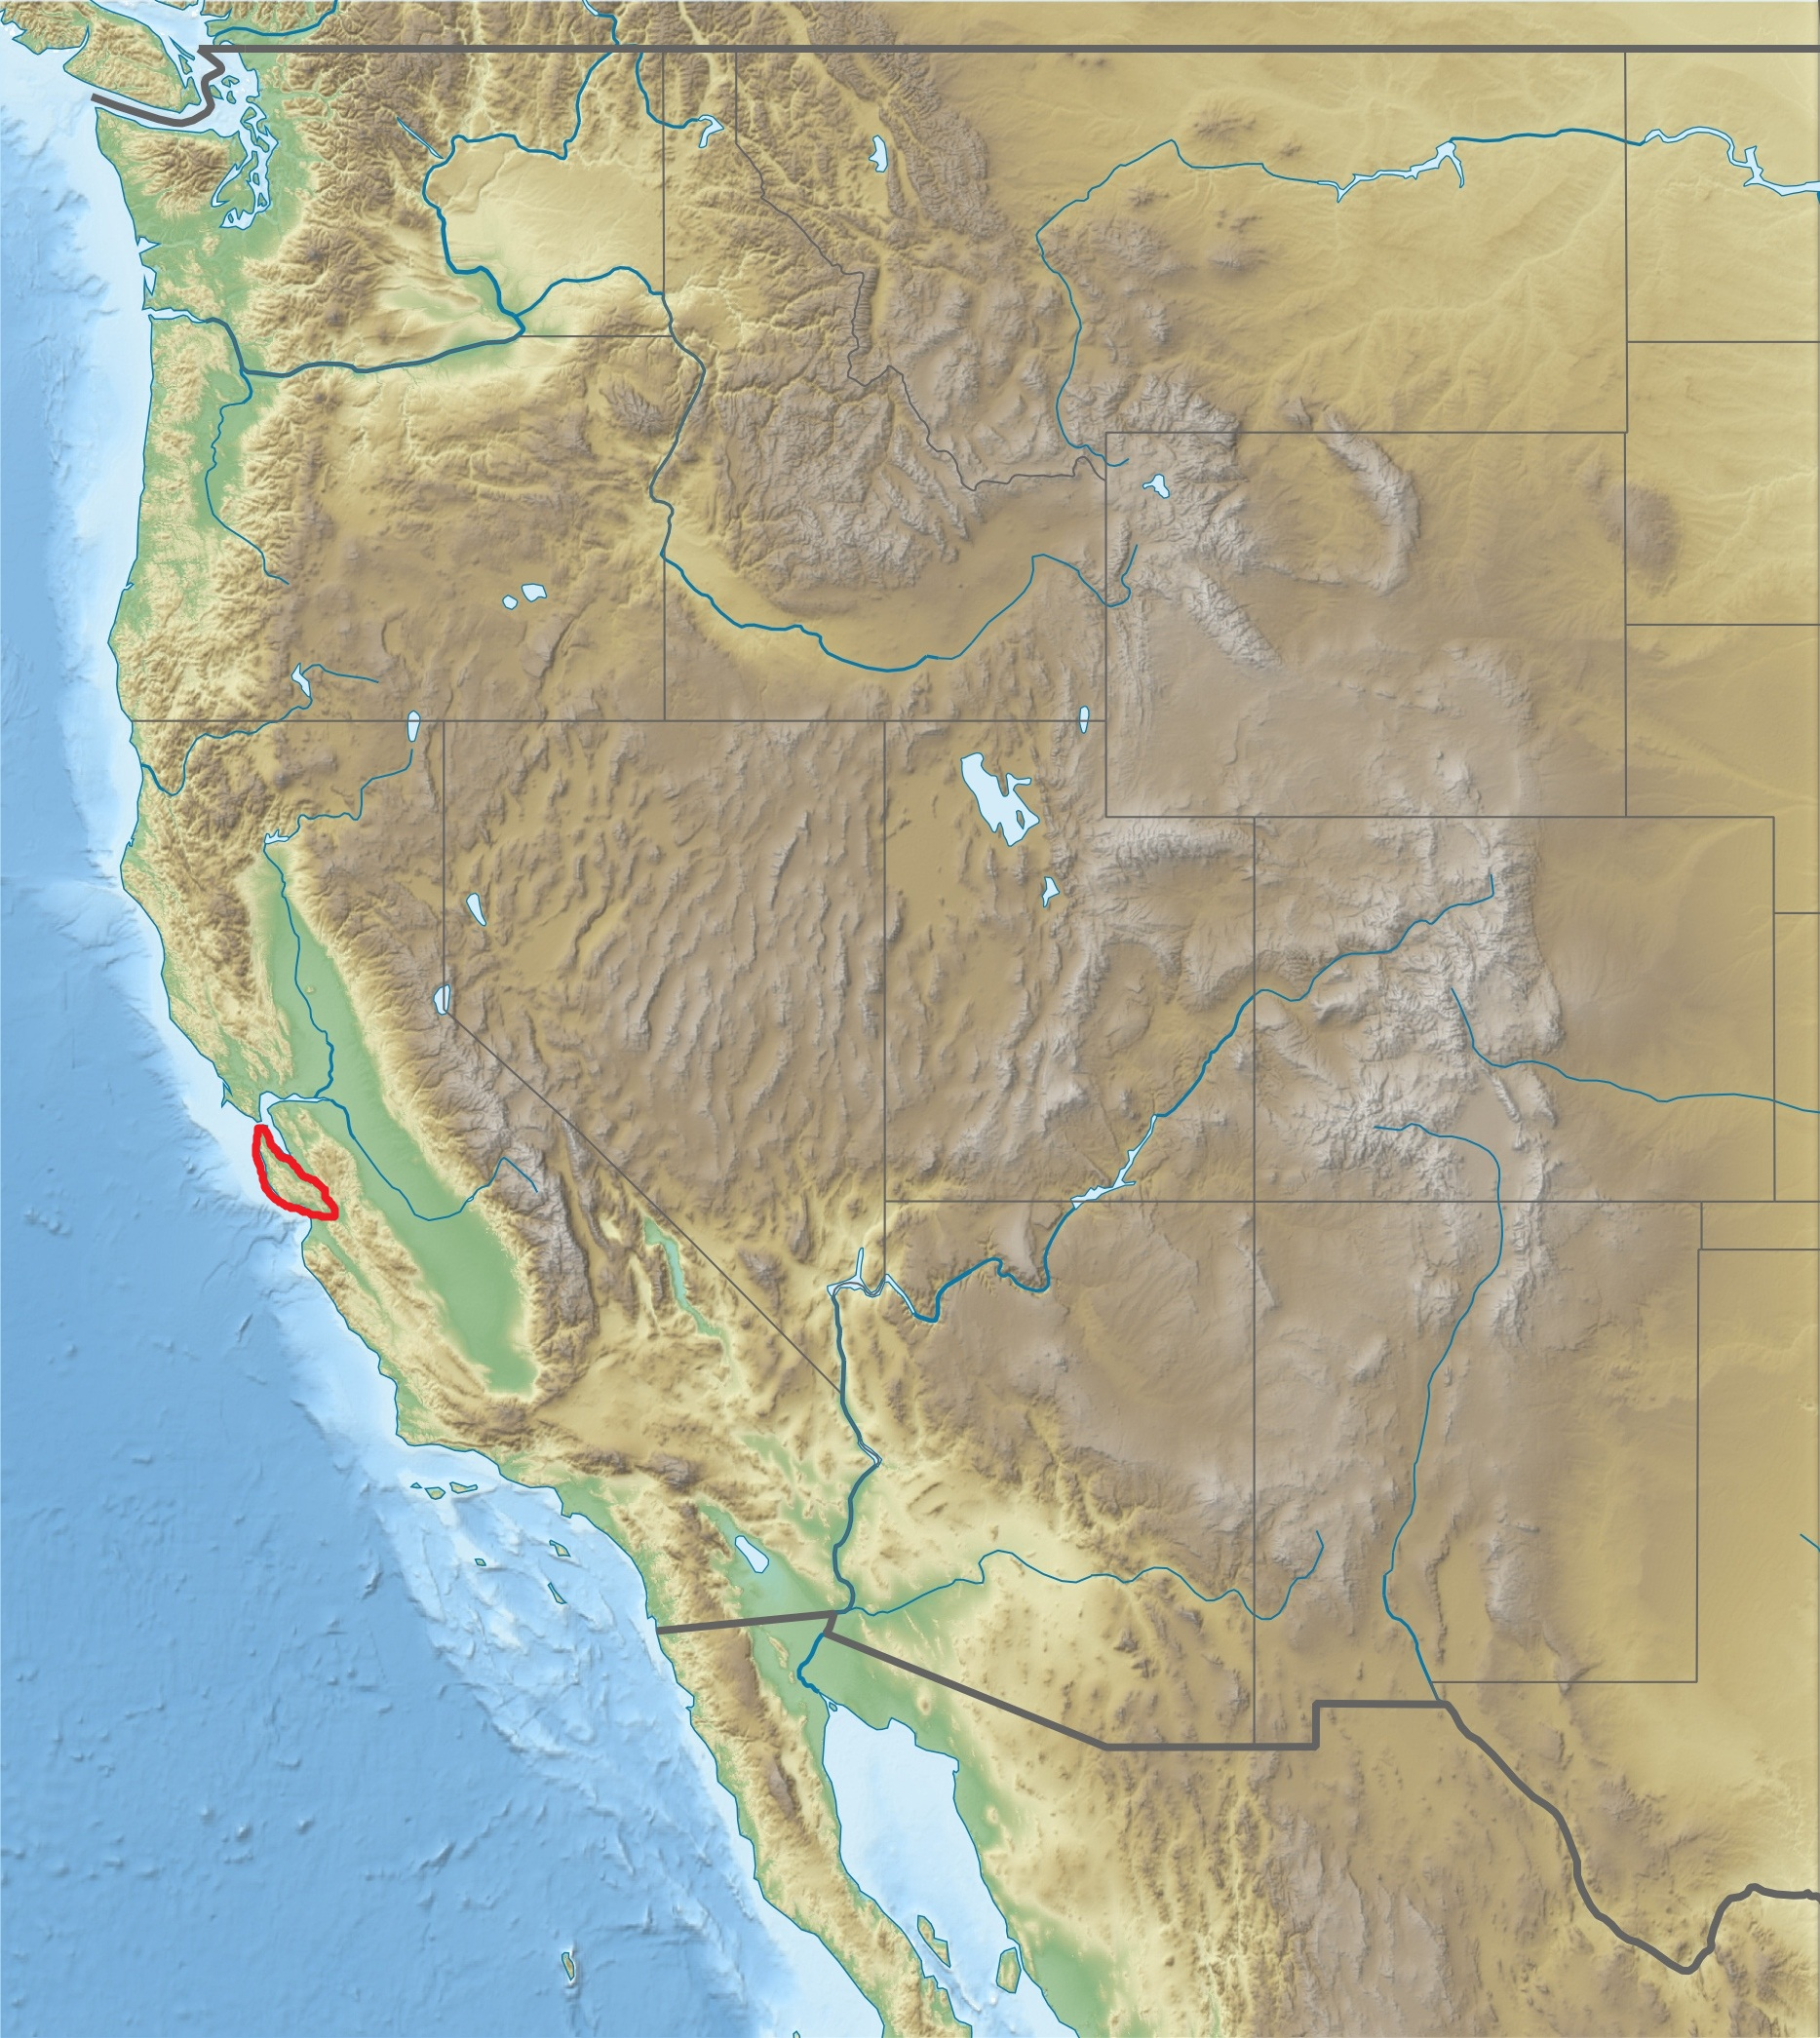 FileUSA Region West relief Santa Cruz Mountains location mapjpg